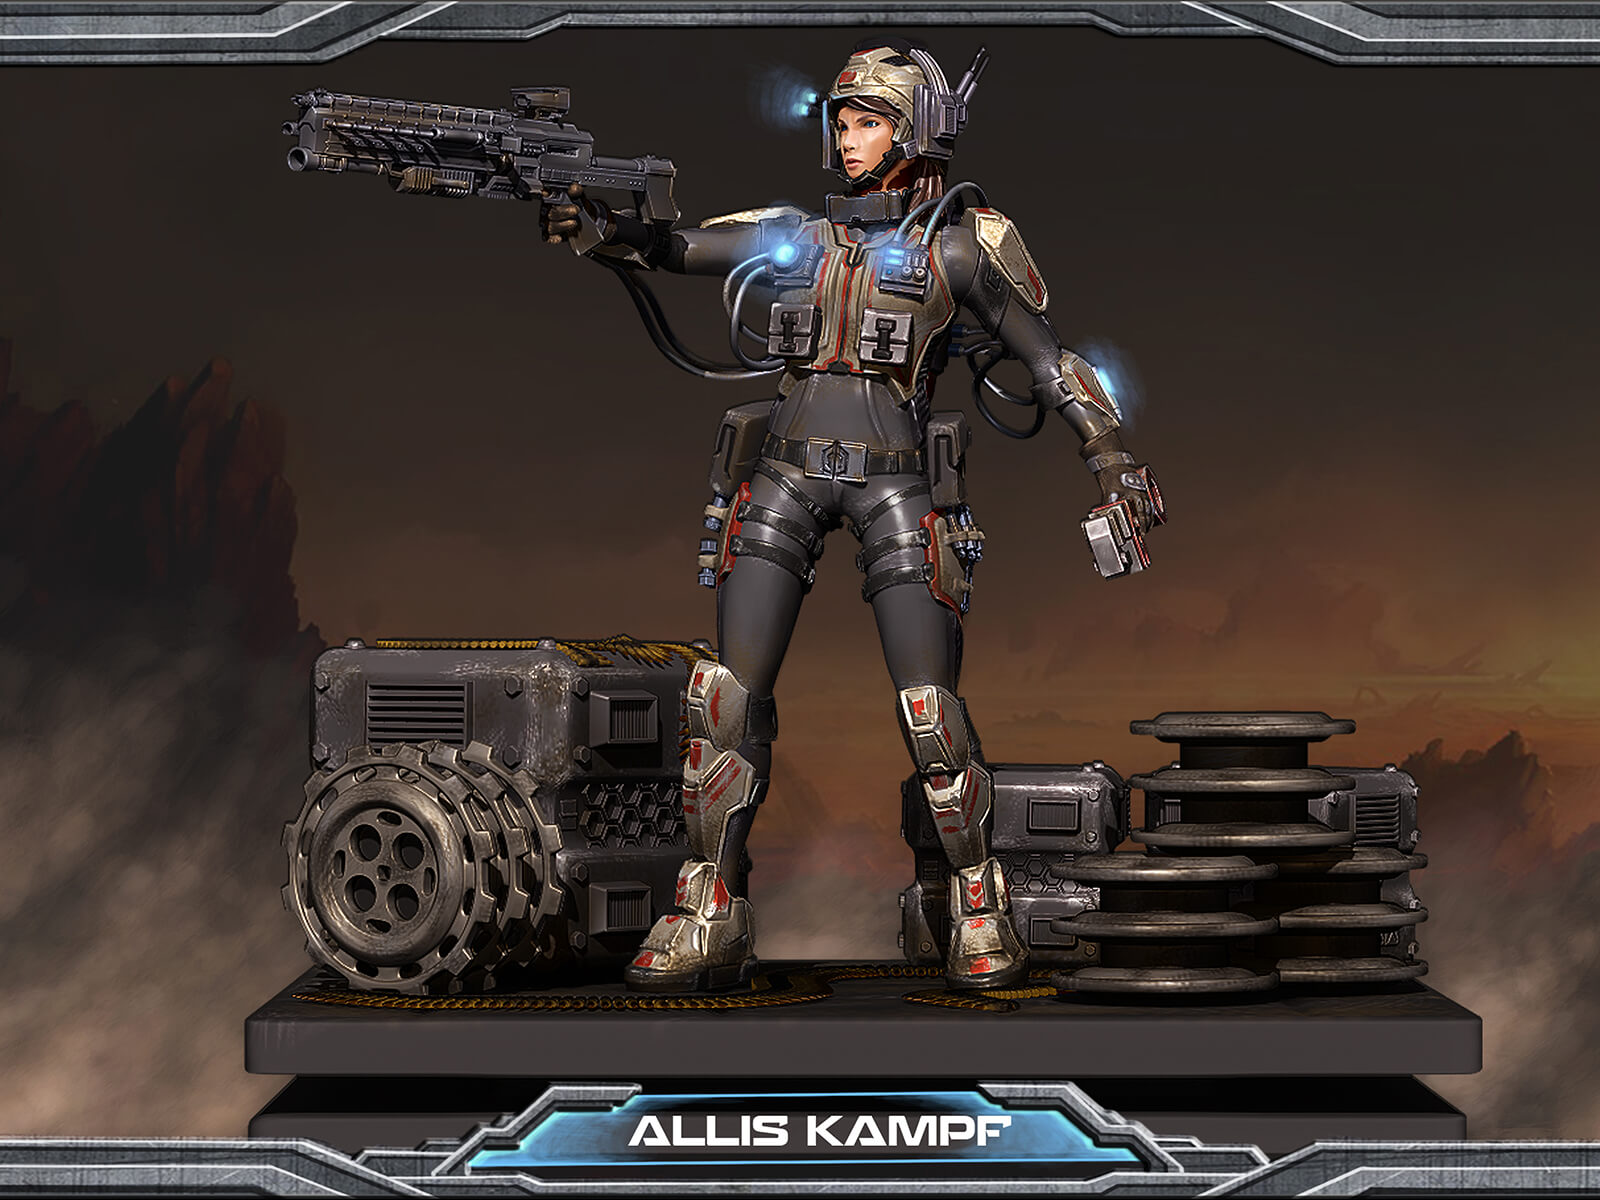 computer-generated 3D model of a character named allis kampf in an armored suit carrying a large gun